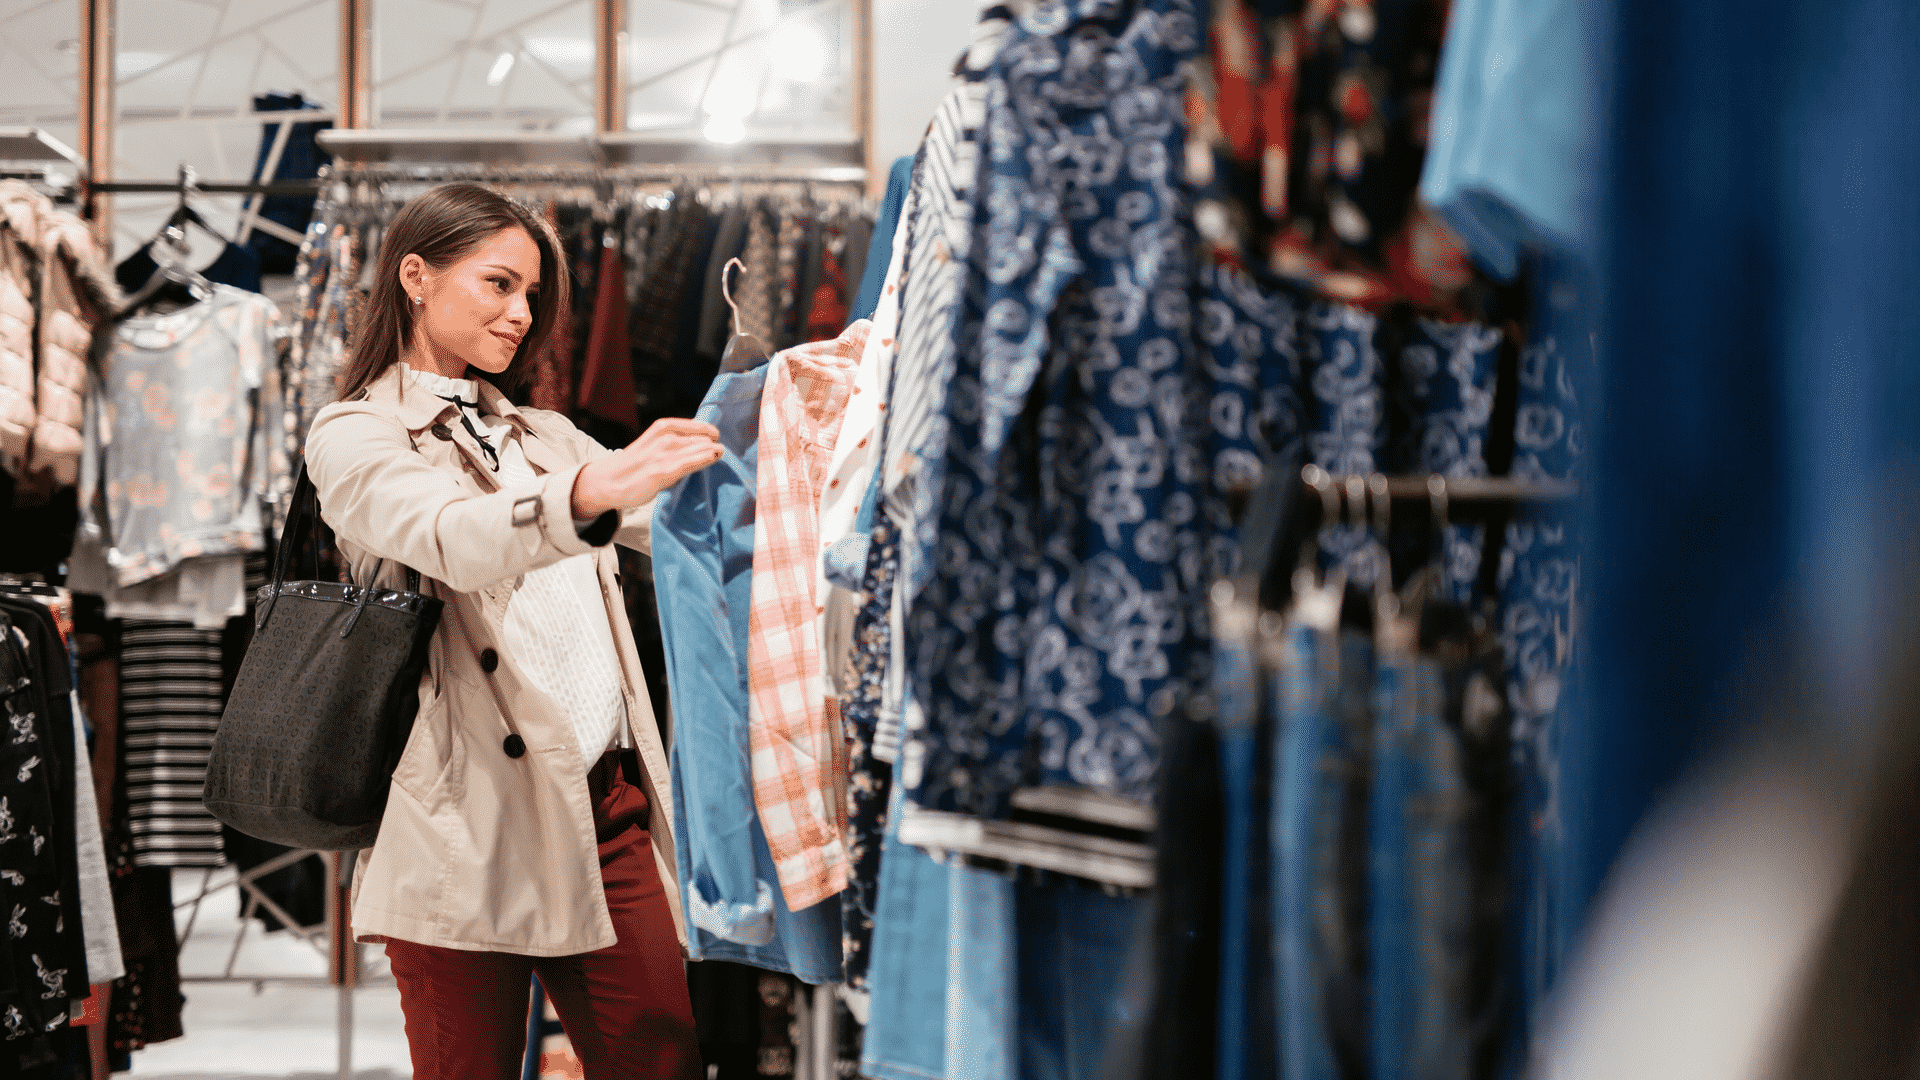 nearly-half-of-of-us-shoppers-circulate-over-in-retailer-hunting